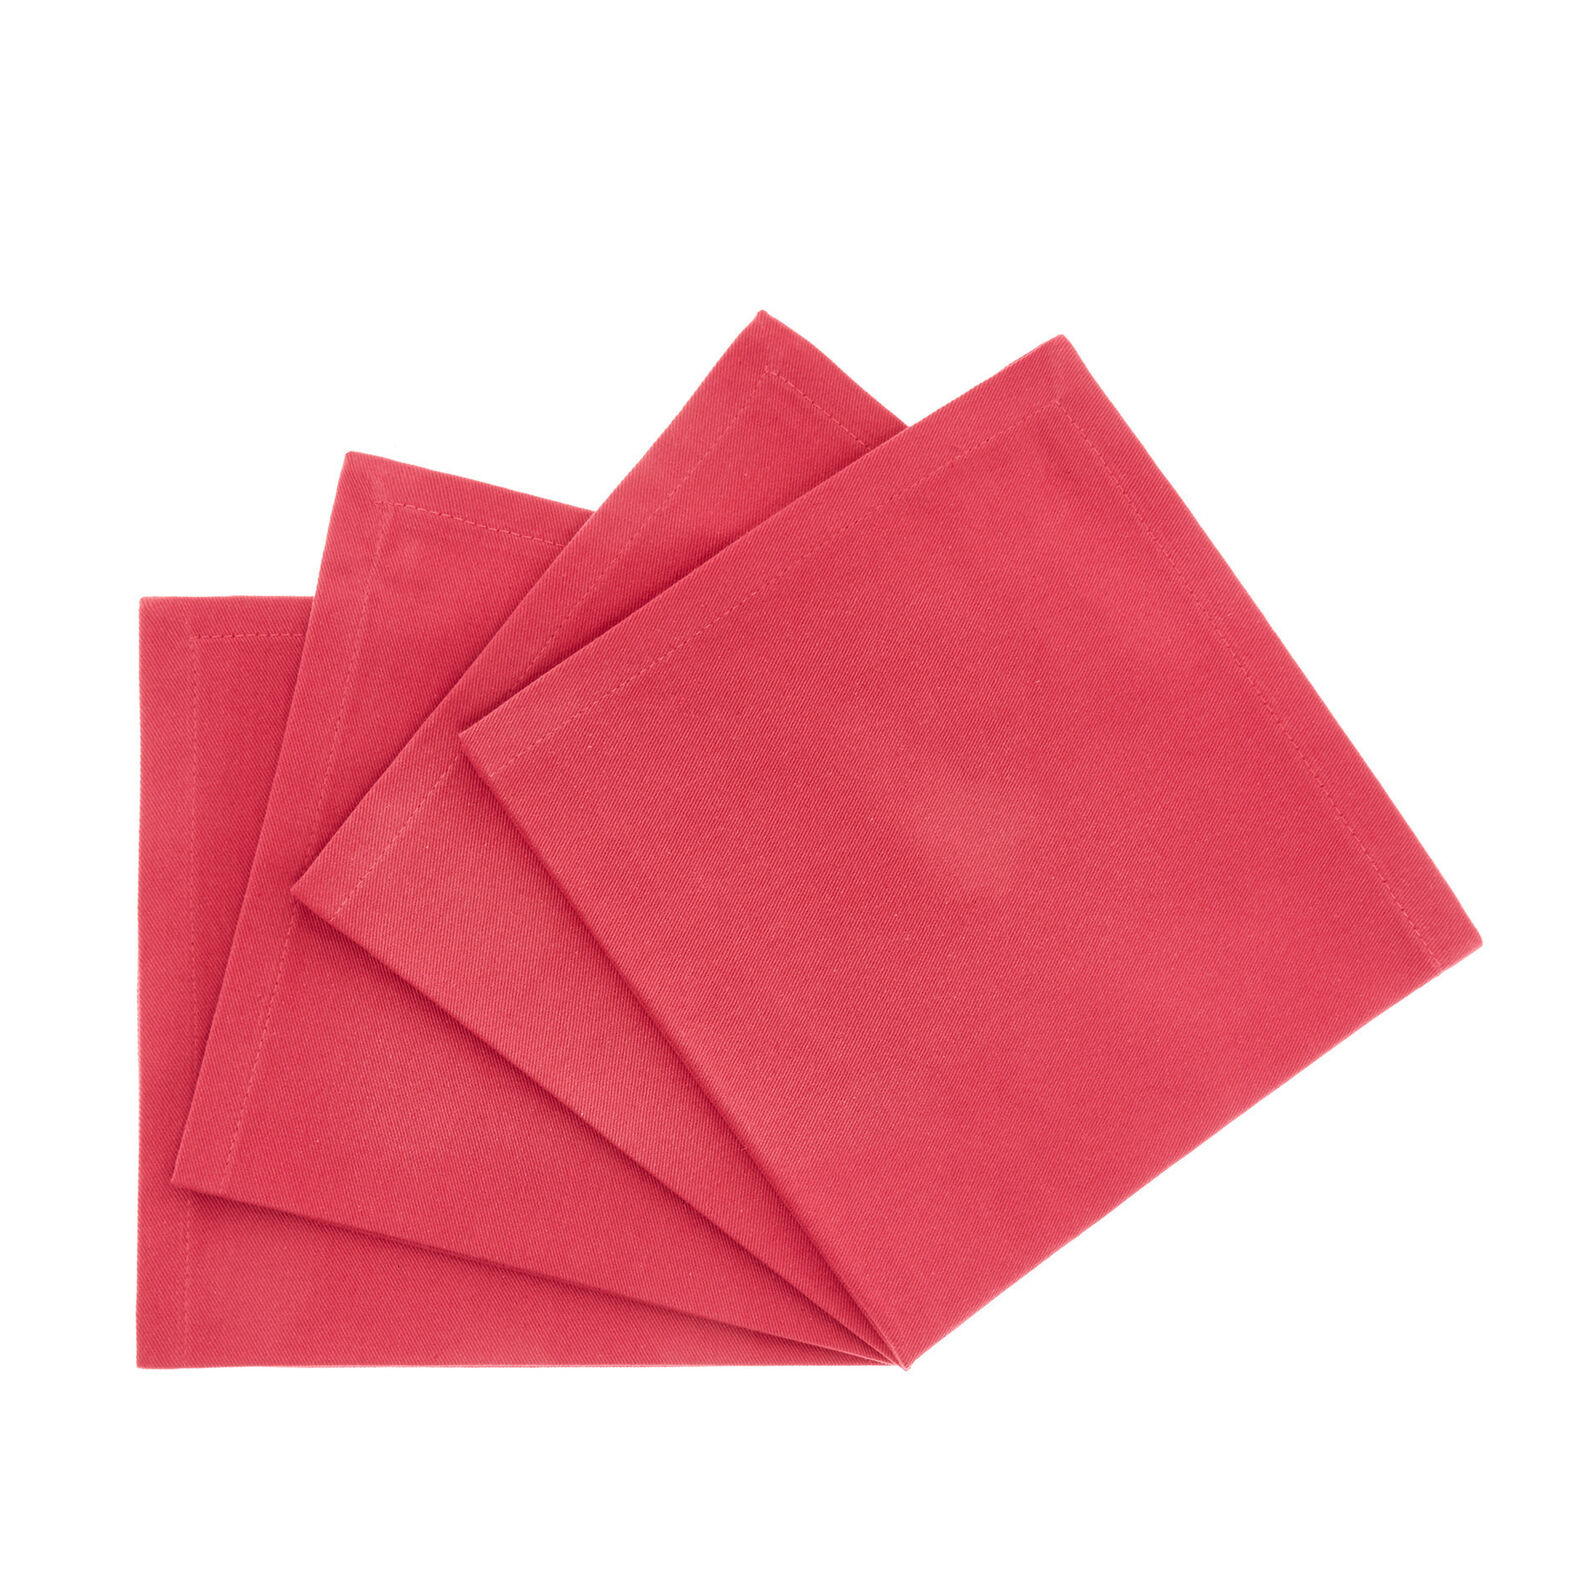 Set of 4 napkins in solid colour cotton twill